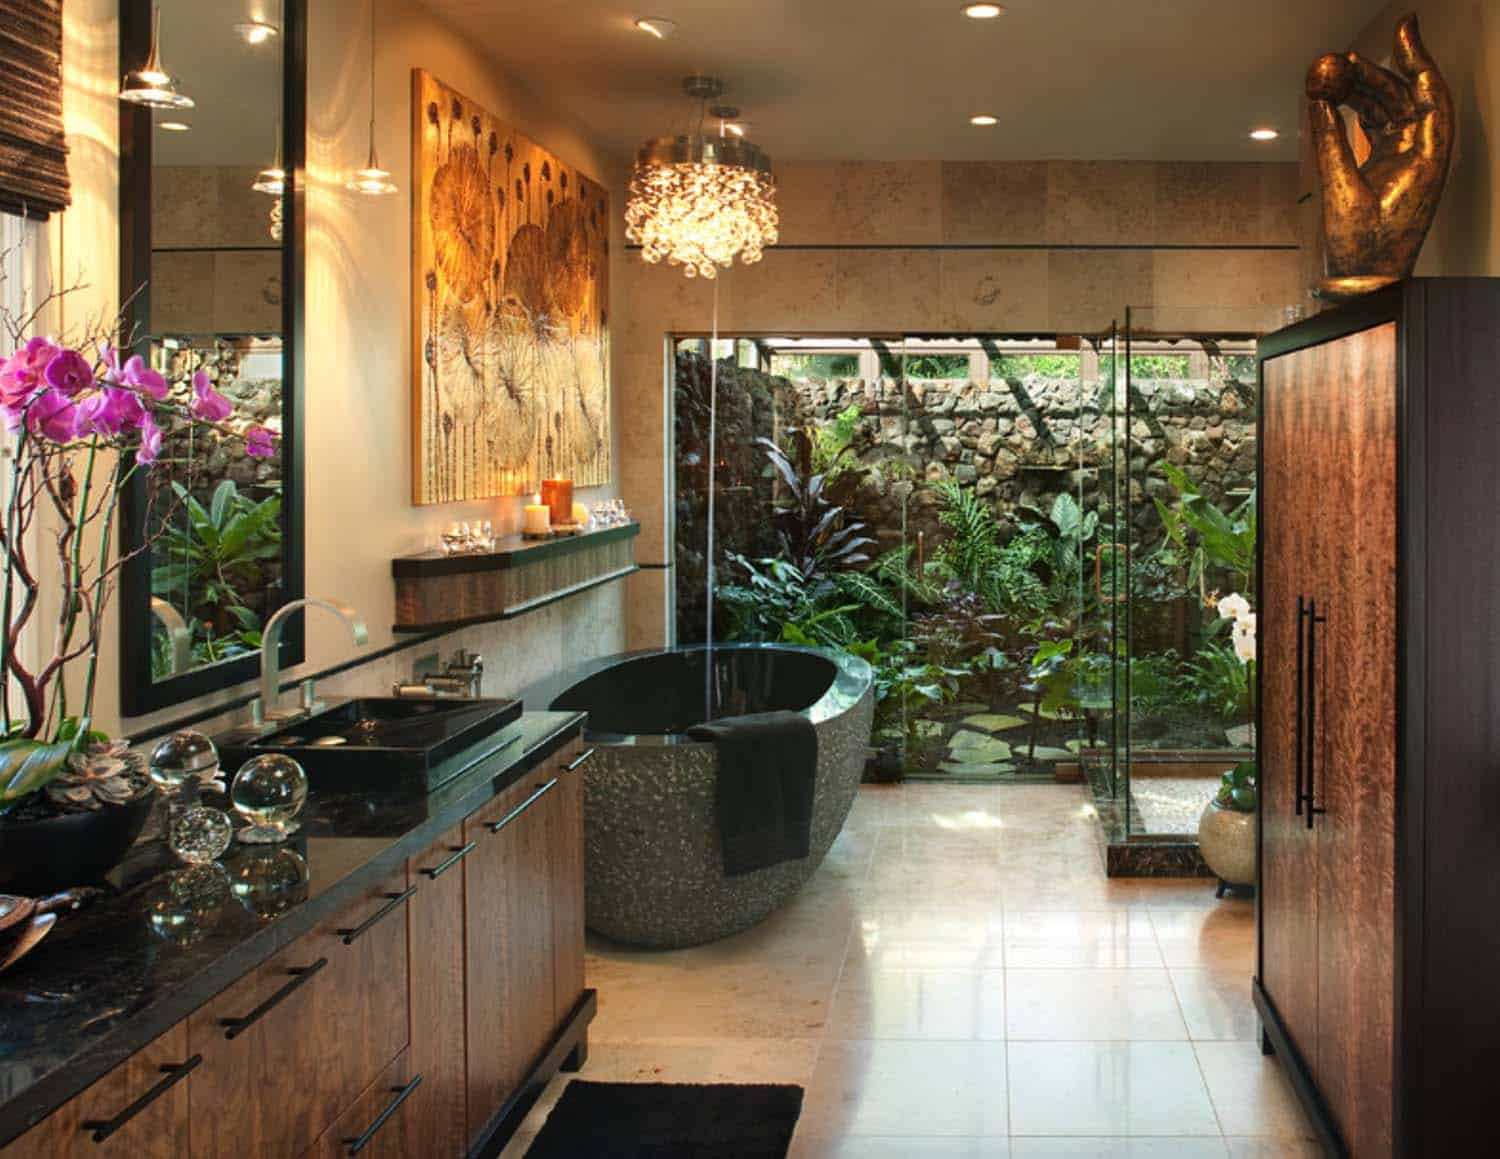 Inspiring Bathrooms Integrating Lush Gardens-12-1 Kindesign